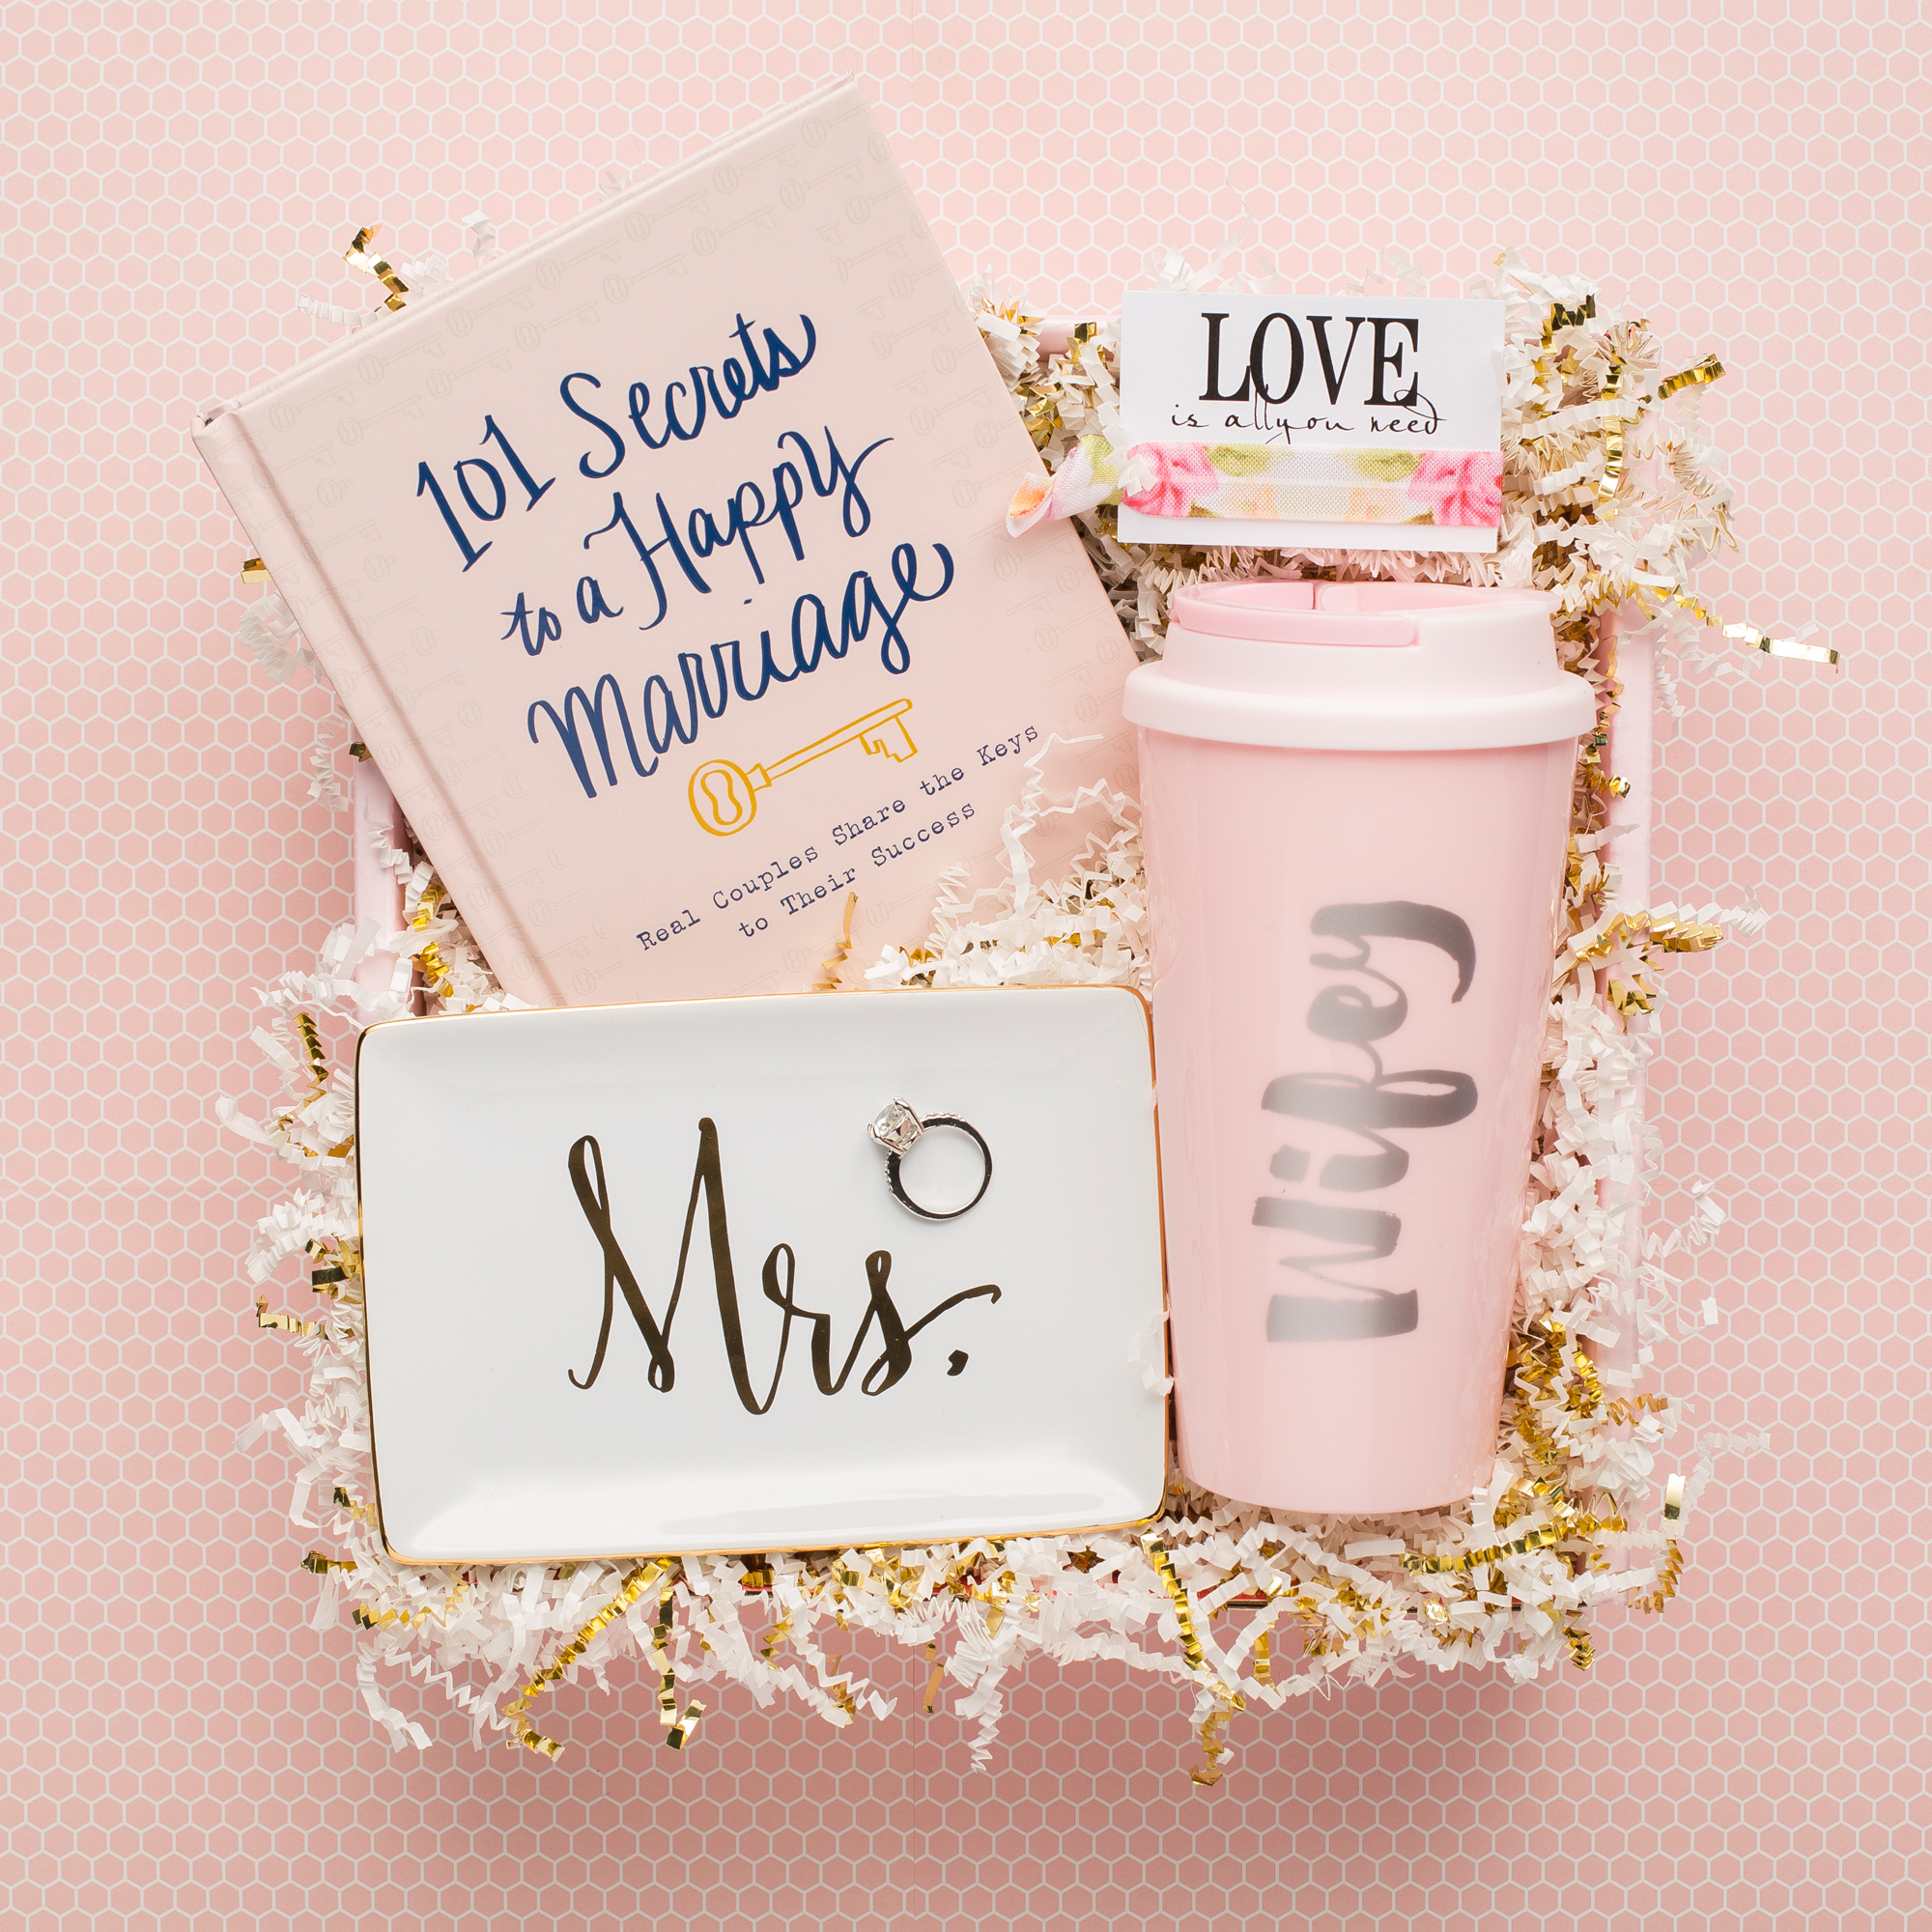 Wedding Party Gifts Canada: Little Shop Of Wow